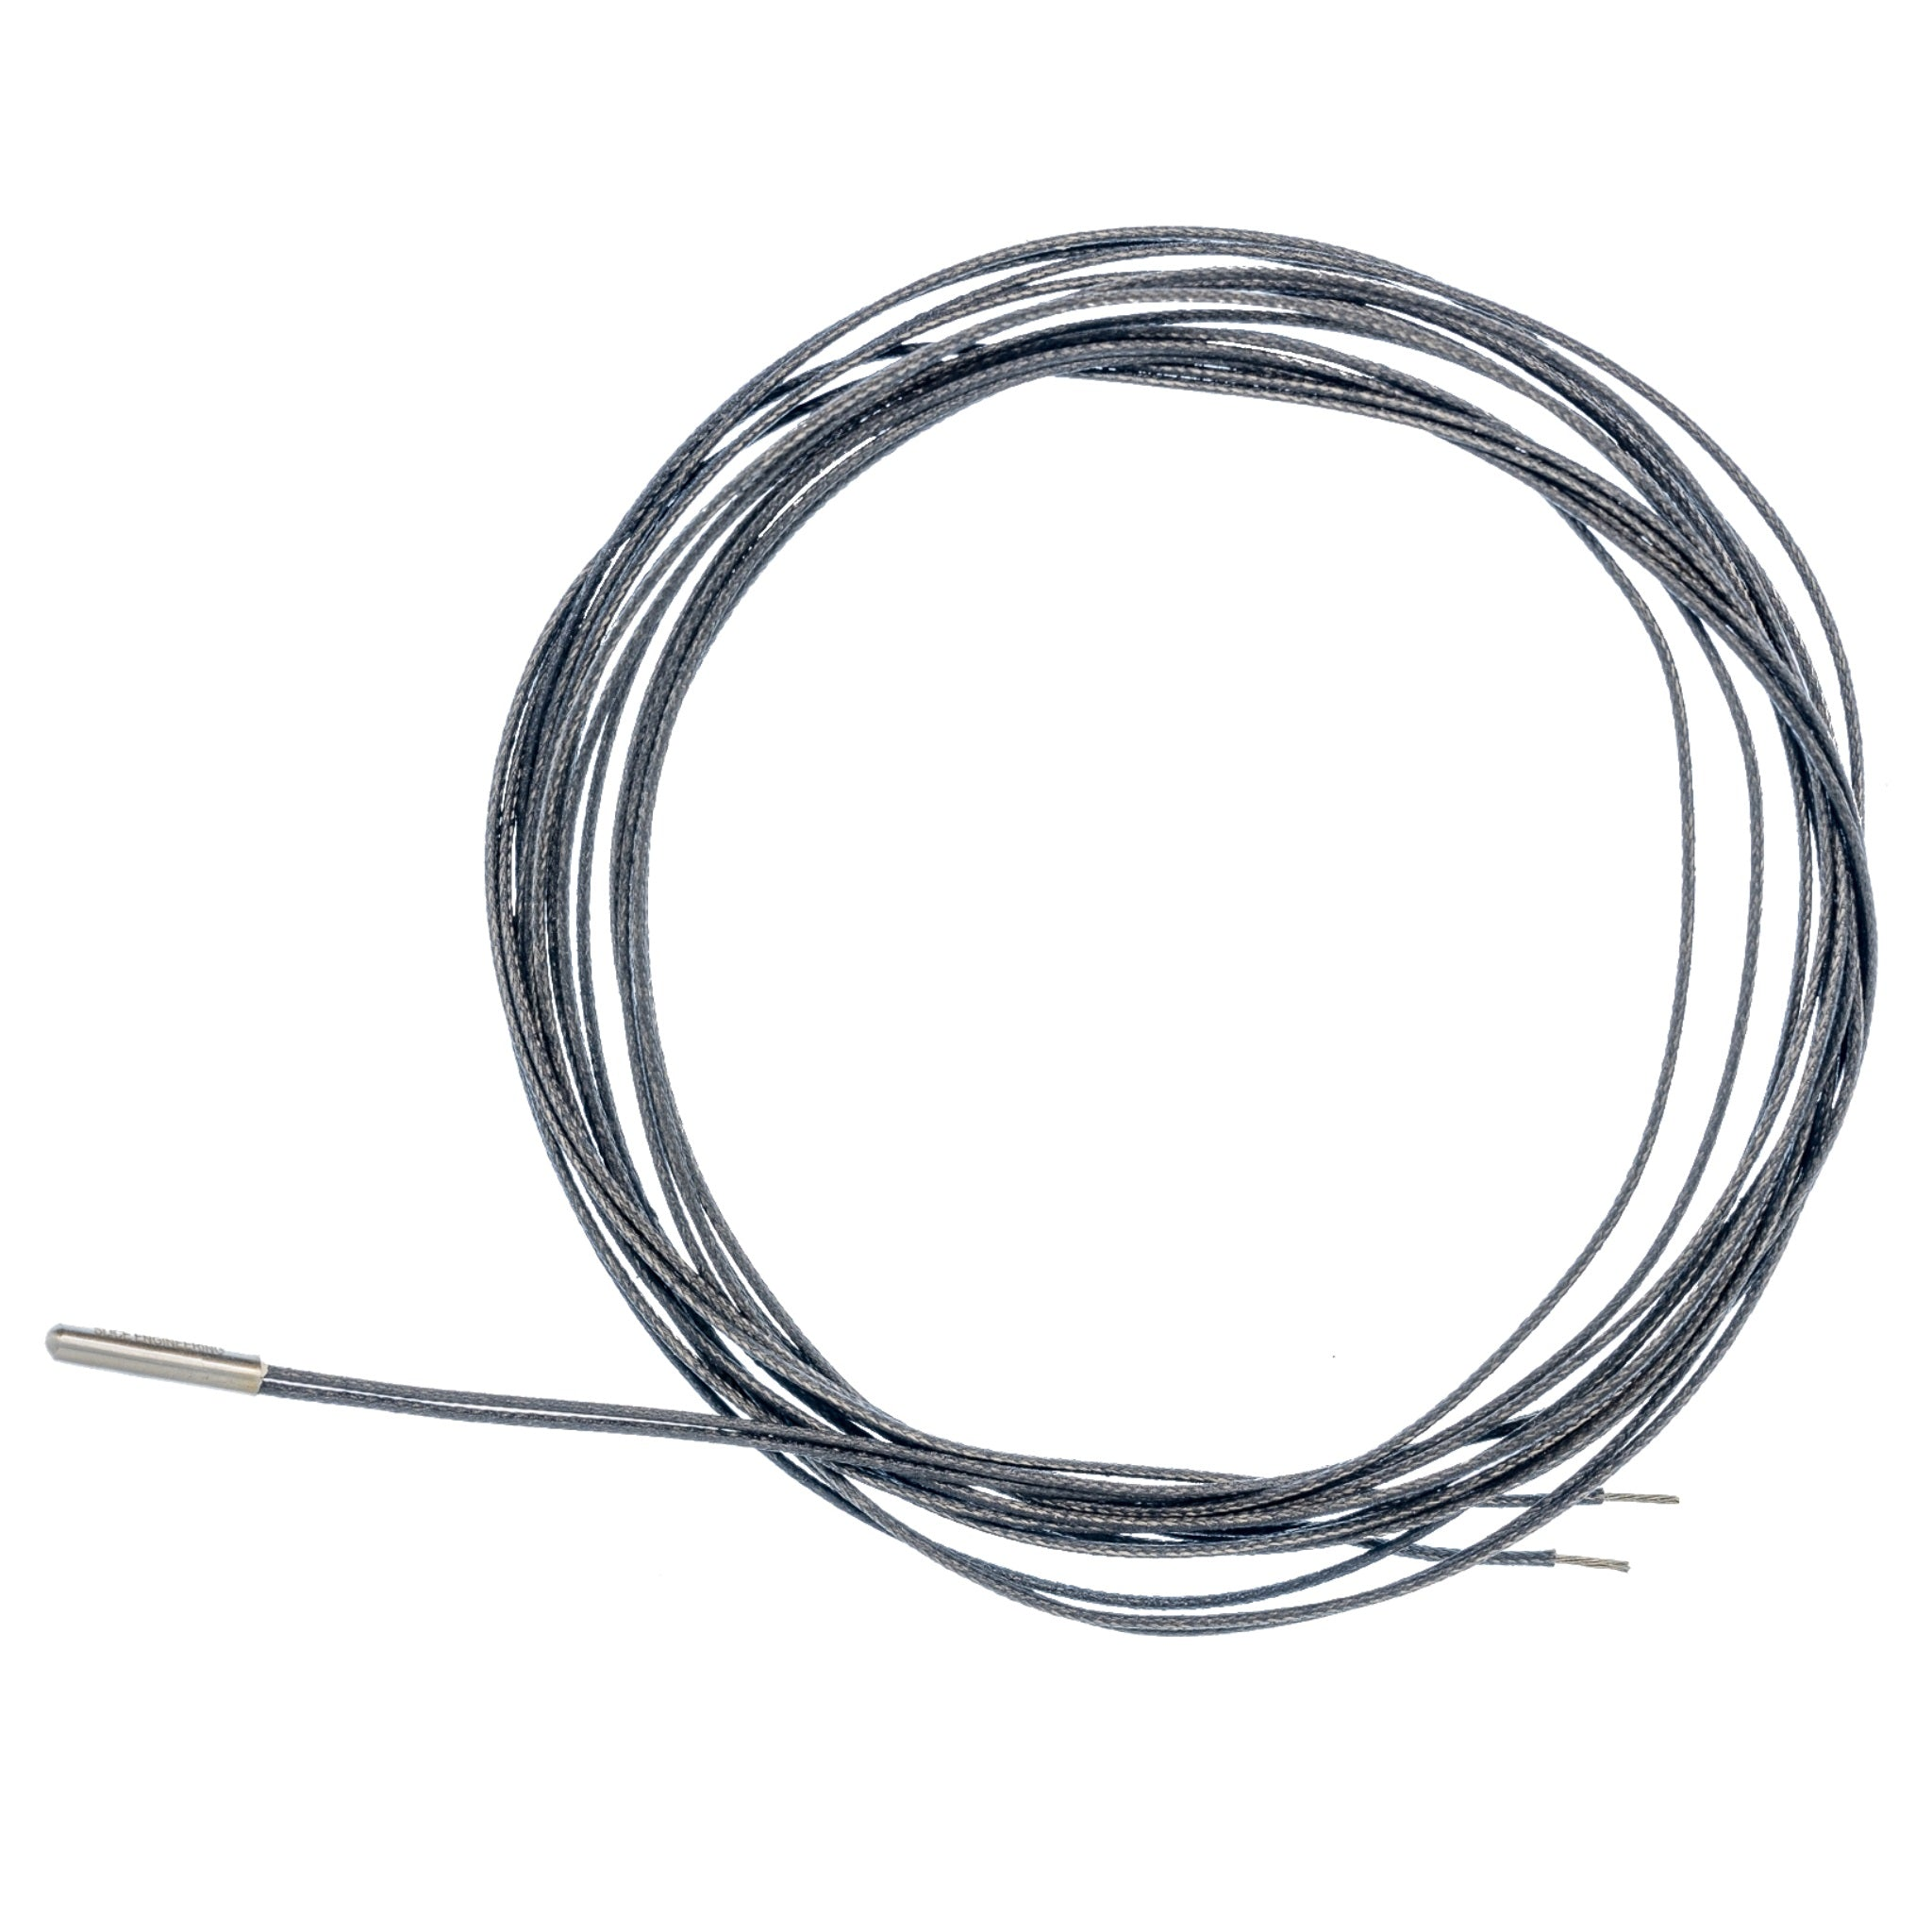 Thermistor: High Temperature Wiring